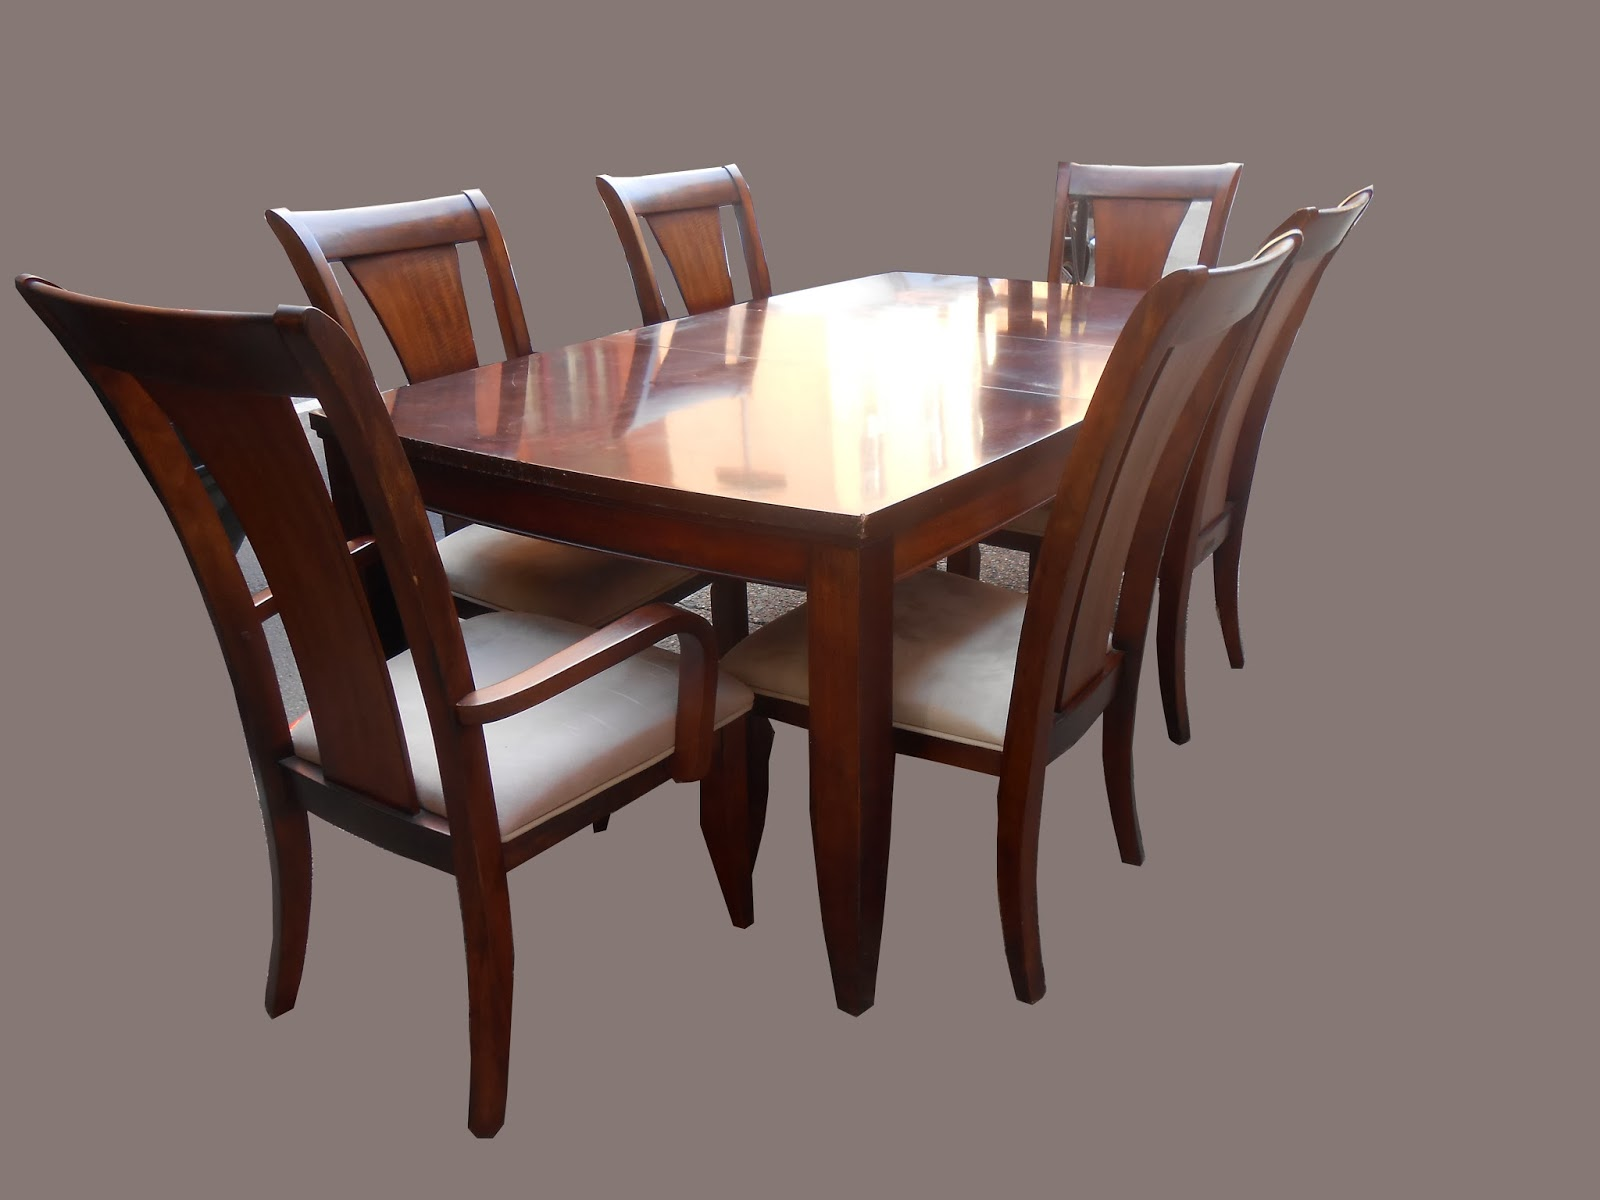 Uhuru furniture collectibles mahogany dining table w 6 for M and s dining